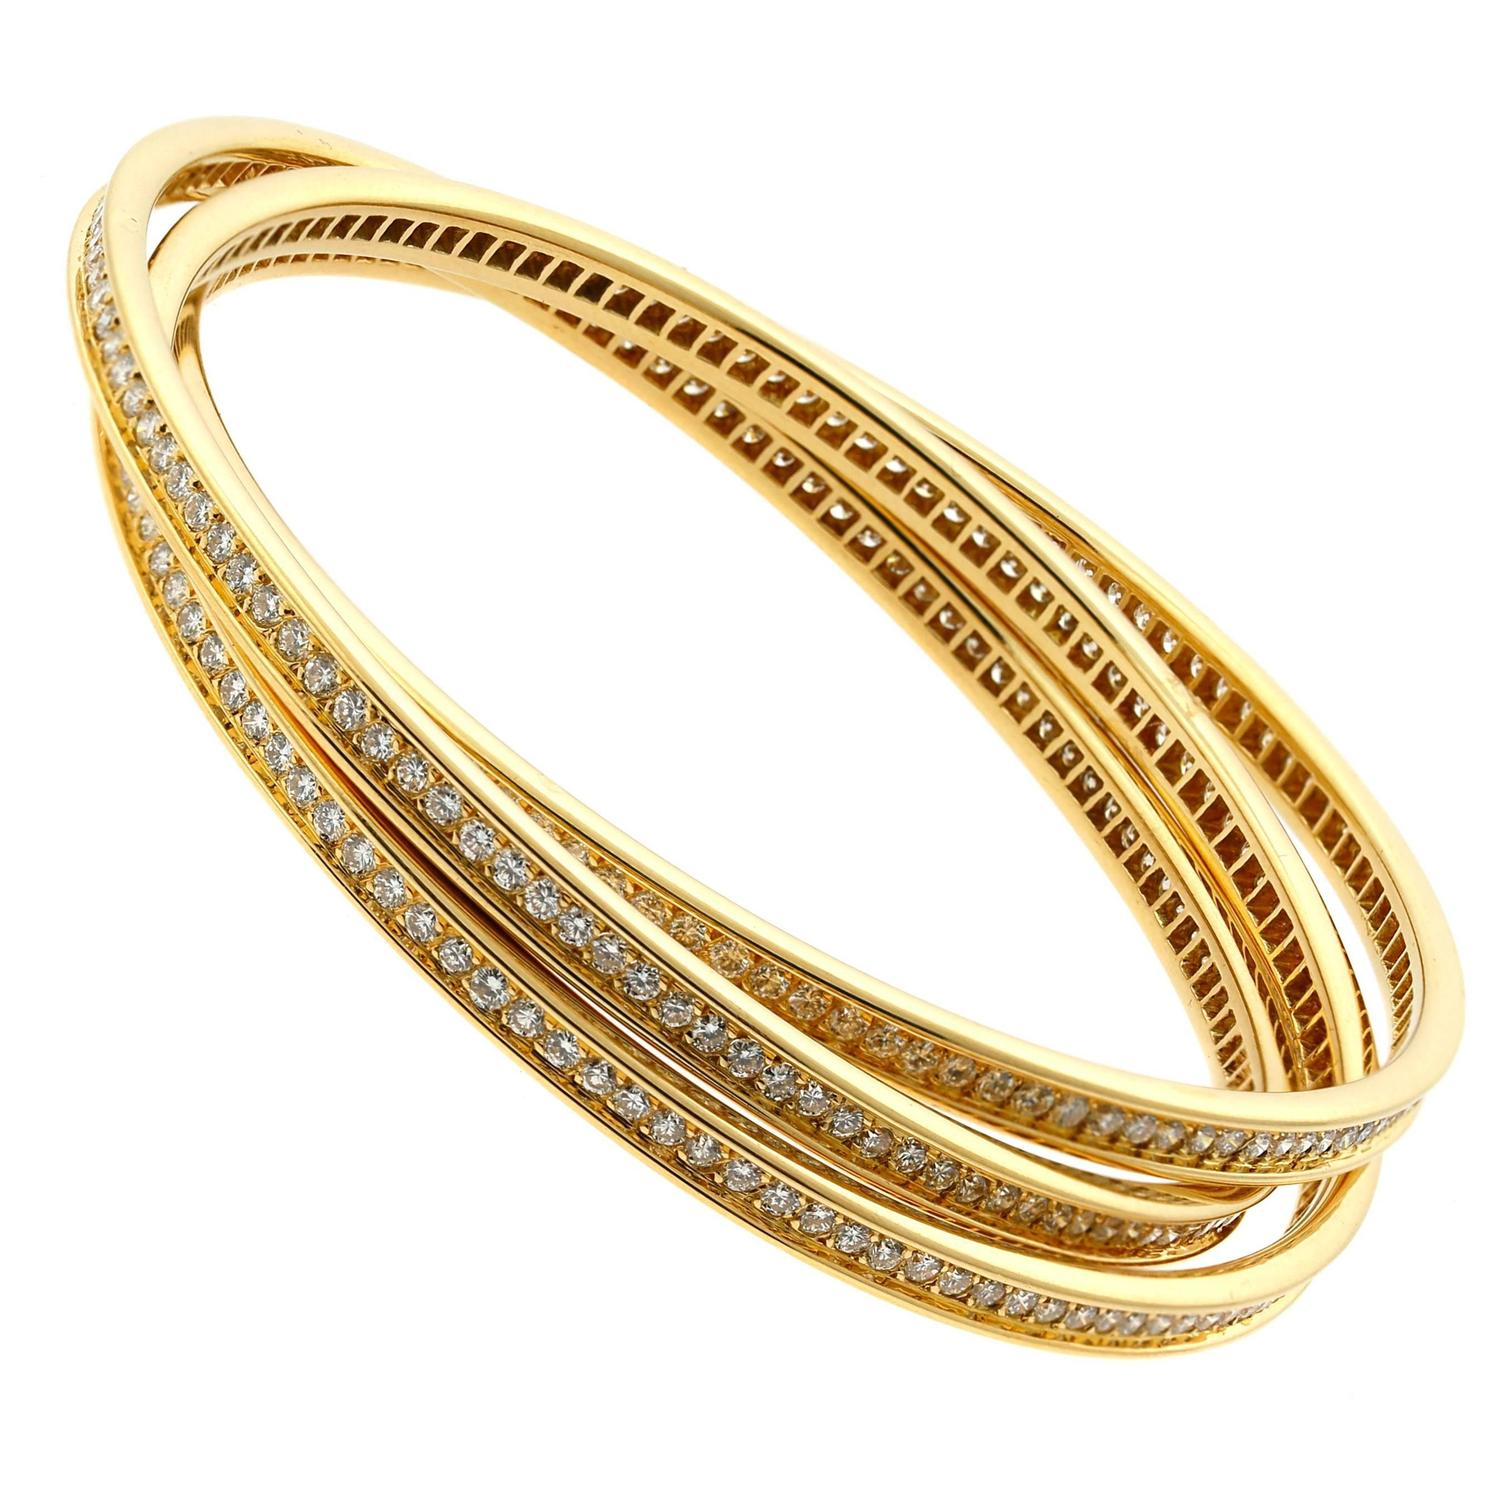 not gold do kids from bangle jewelry for anniyo you size product color item bracelet baby understand plated small in bangles contact us popular accessories if